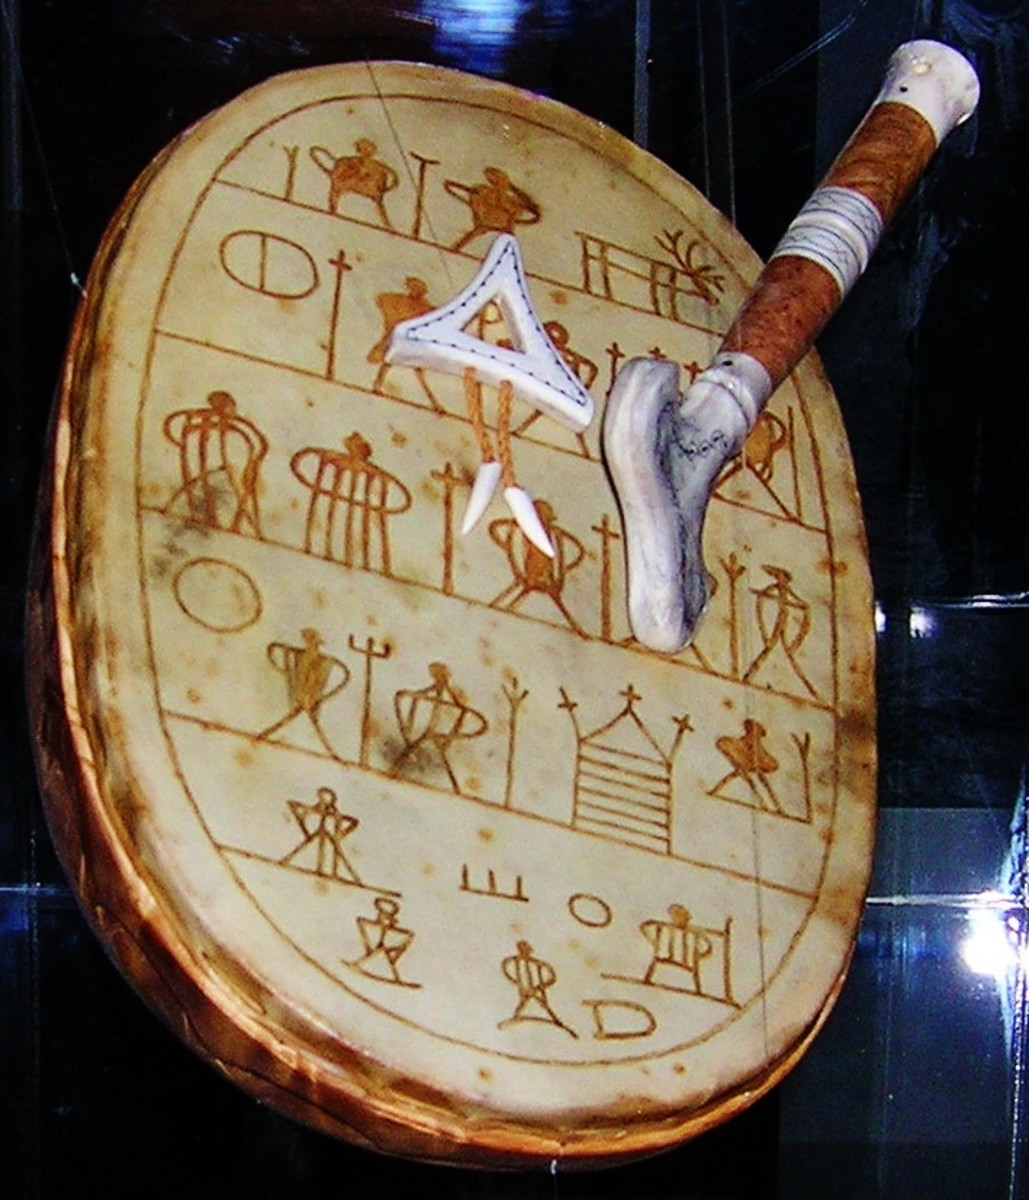 Copy of the rune drum belonging to the 100 year old Saami Anders Paulsen. Cultural Department of the Museum in Oslo, Norway. The rune drum was confiscated by the authorities of Vadsø in 1691. Photo by Sandivas.